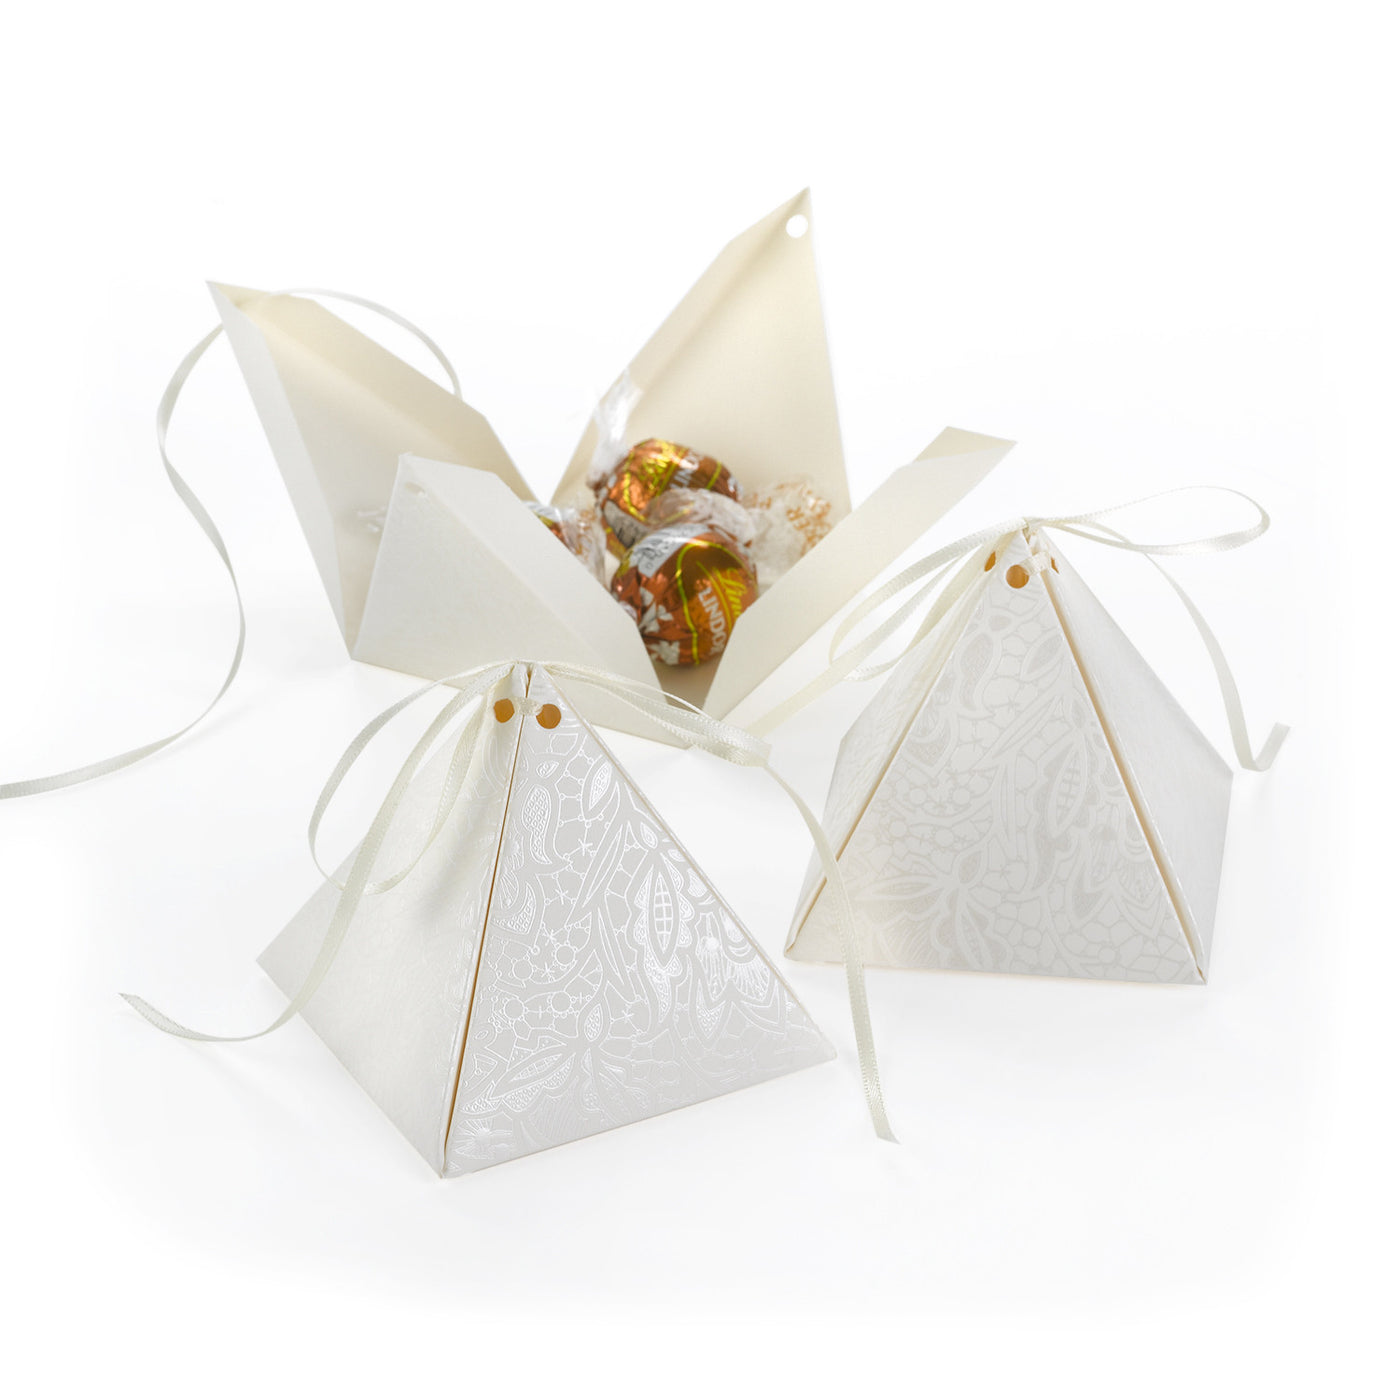 Pyramid Floral Lace Favor Box (Pack of 25) – Candy Cake Weddings ... a3f13520618e8